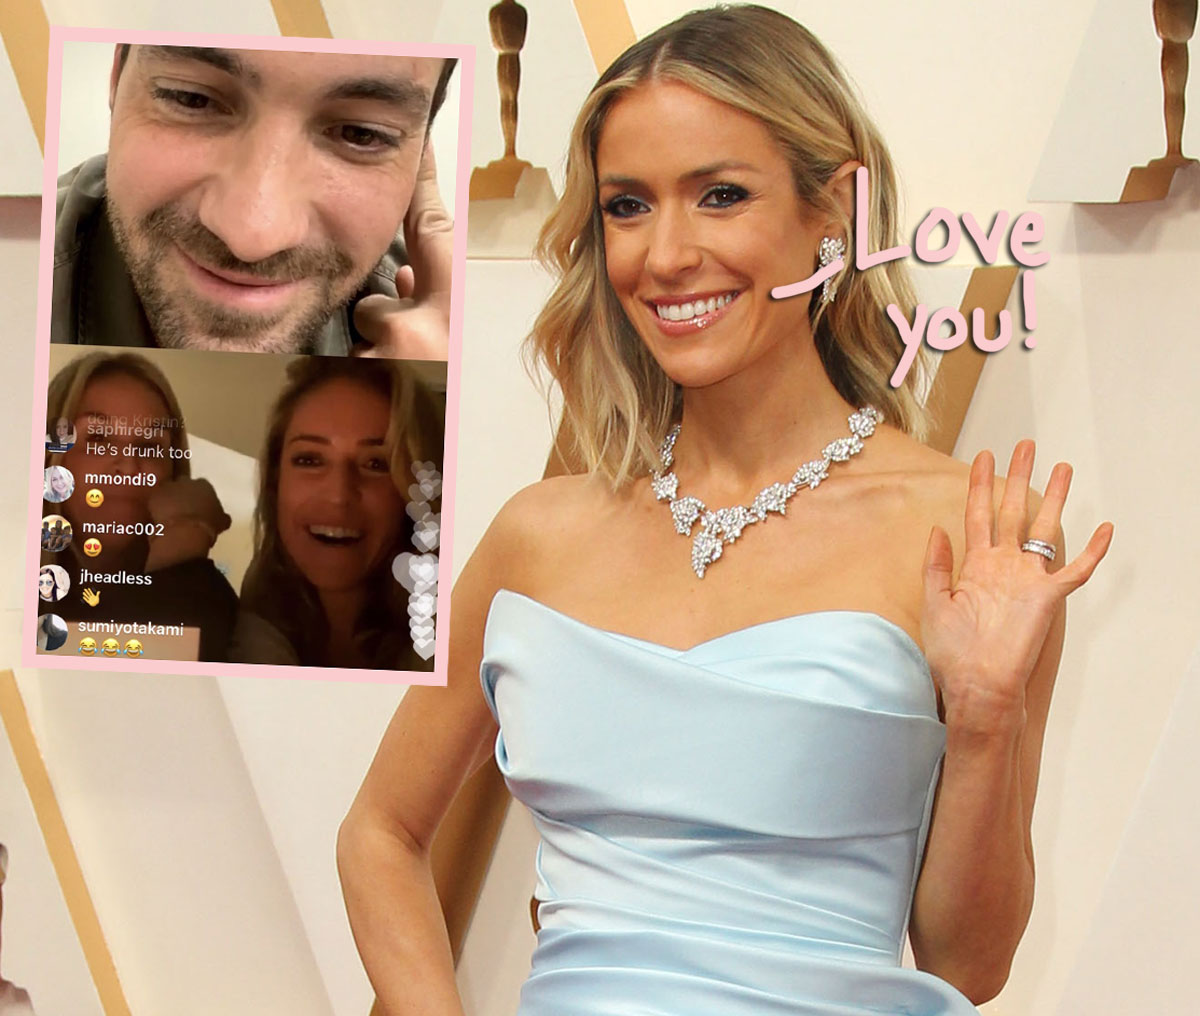 Kristin Cavallari & Jeff Dye Exchange The L-Word During Live Video Chat! Oh SNAP!